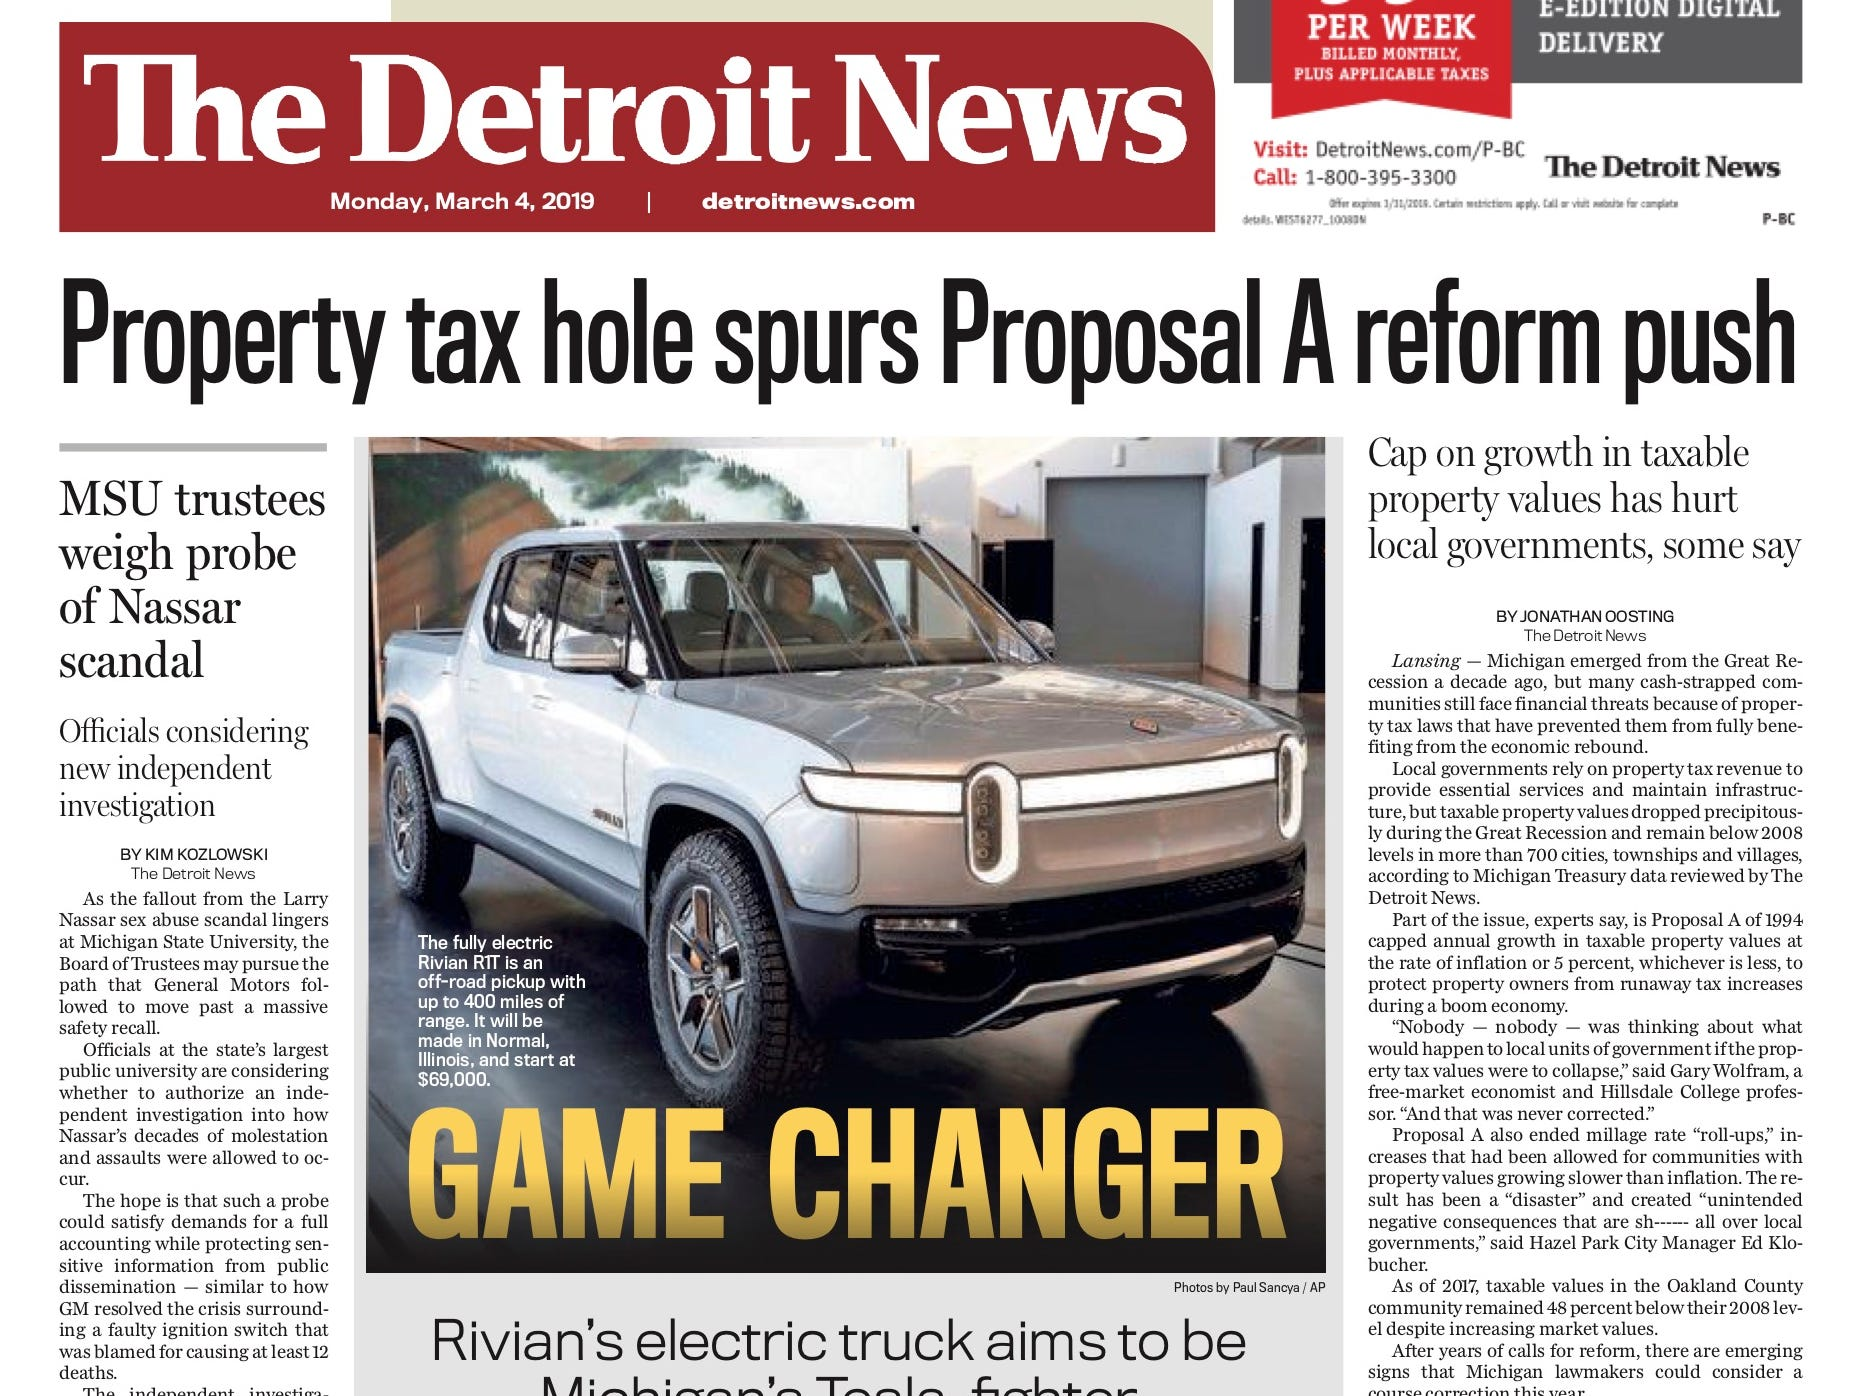 The front page of the Detroit News on March 4, 2019